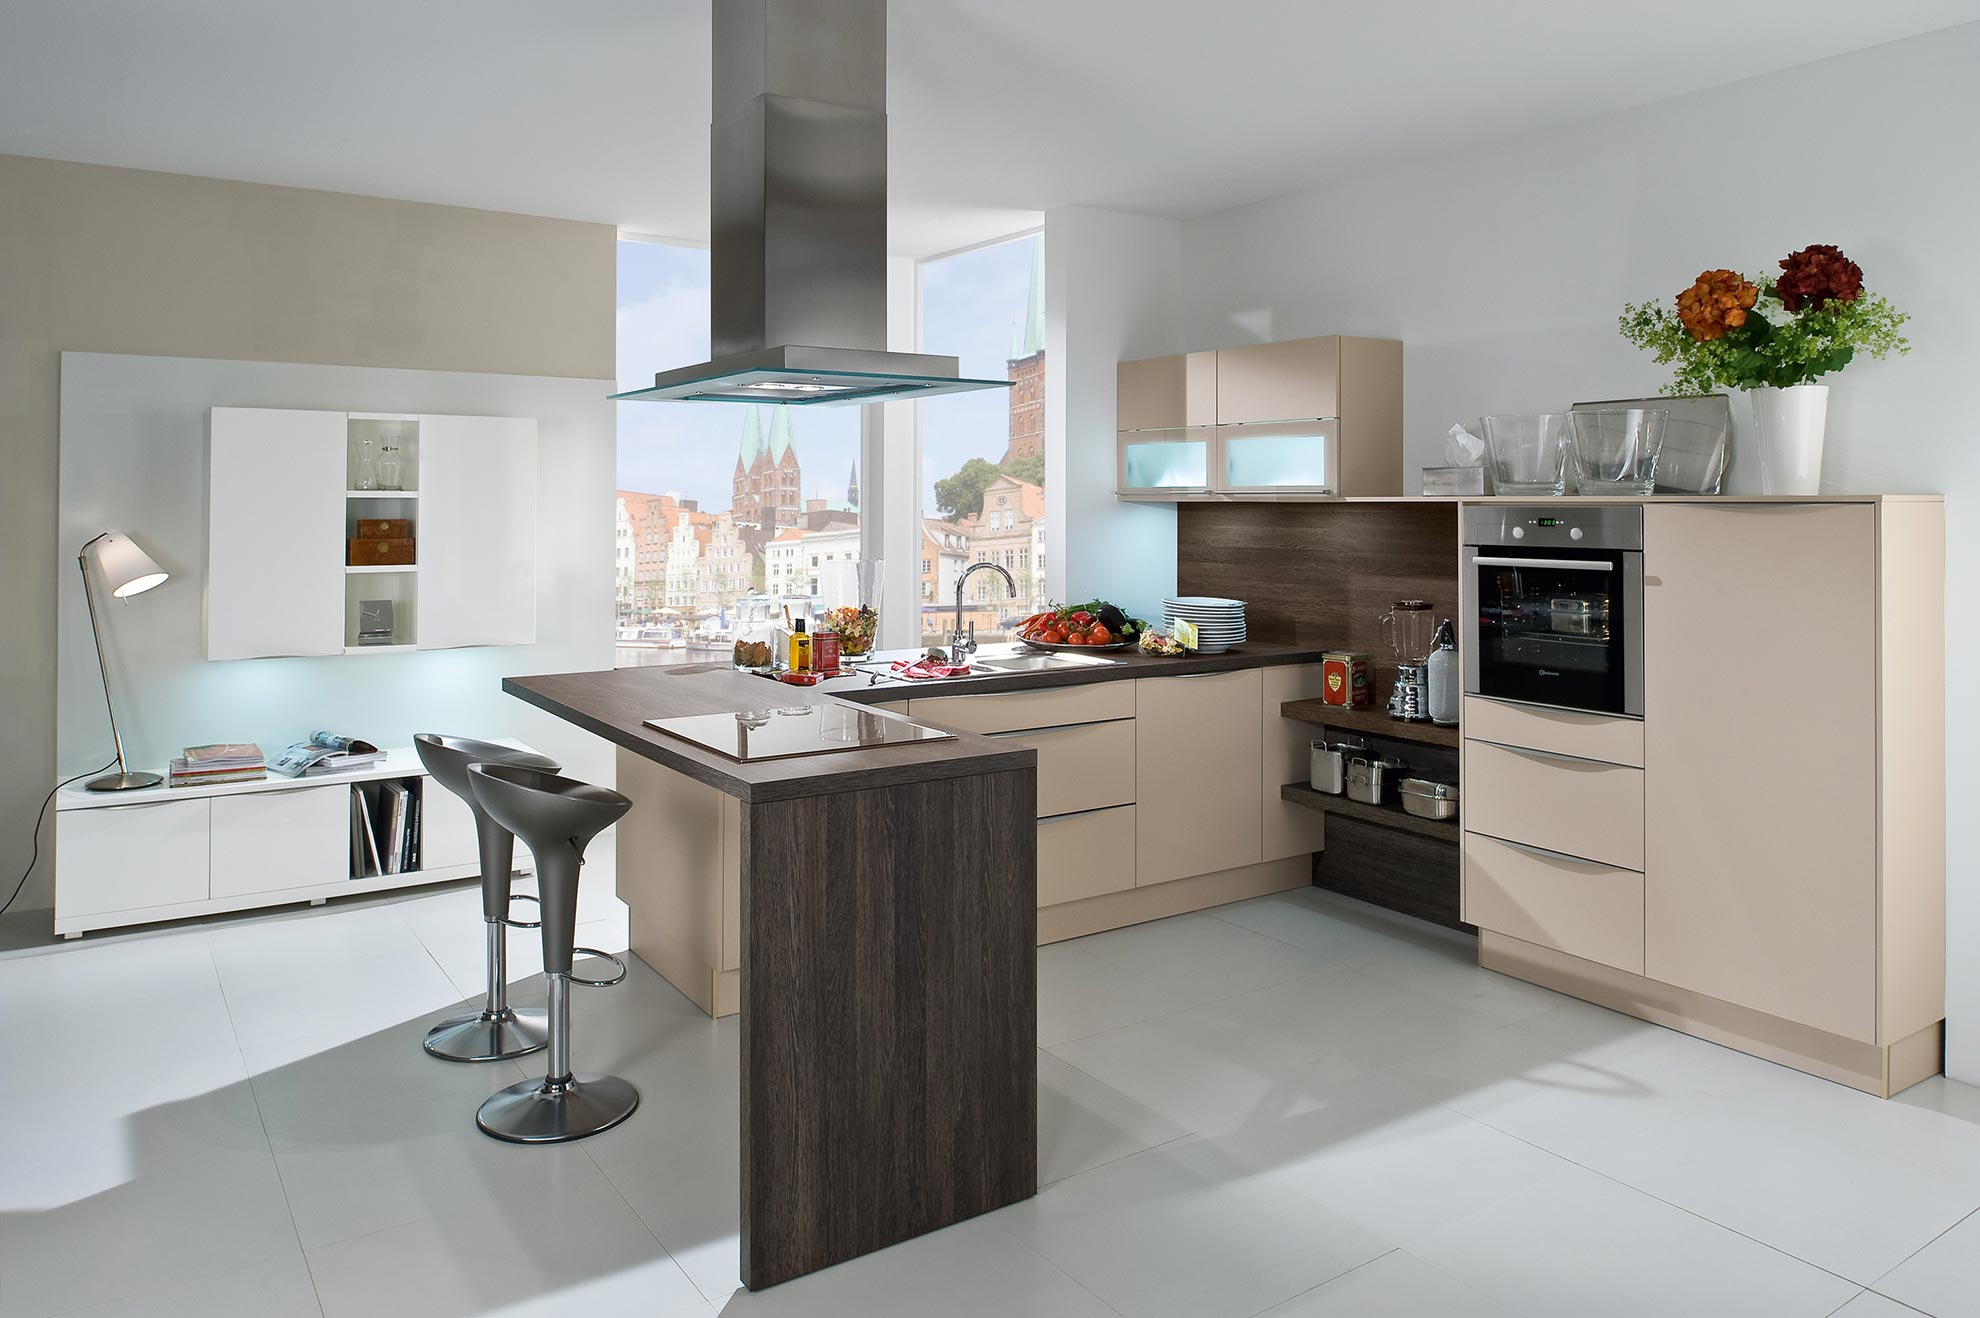 Kitchens bedford bedfordshire fitted kitchen installation for Kitchen photos